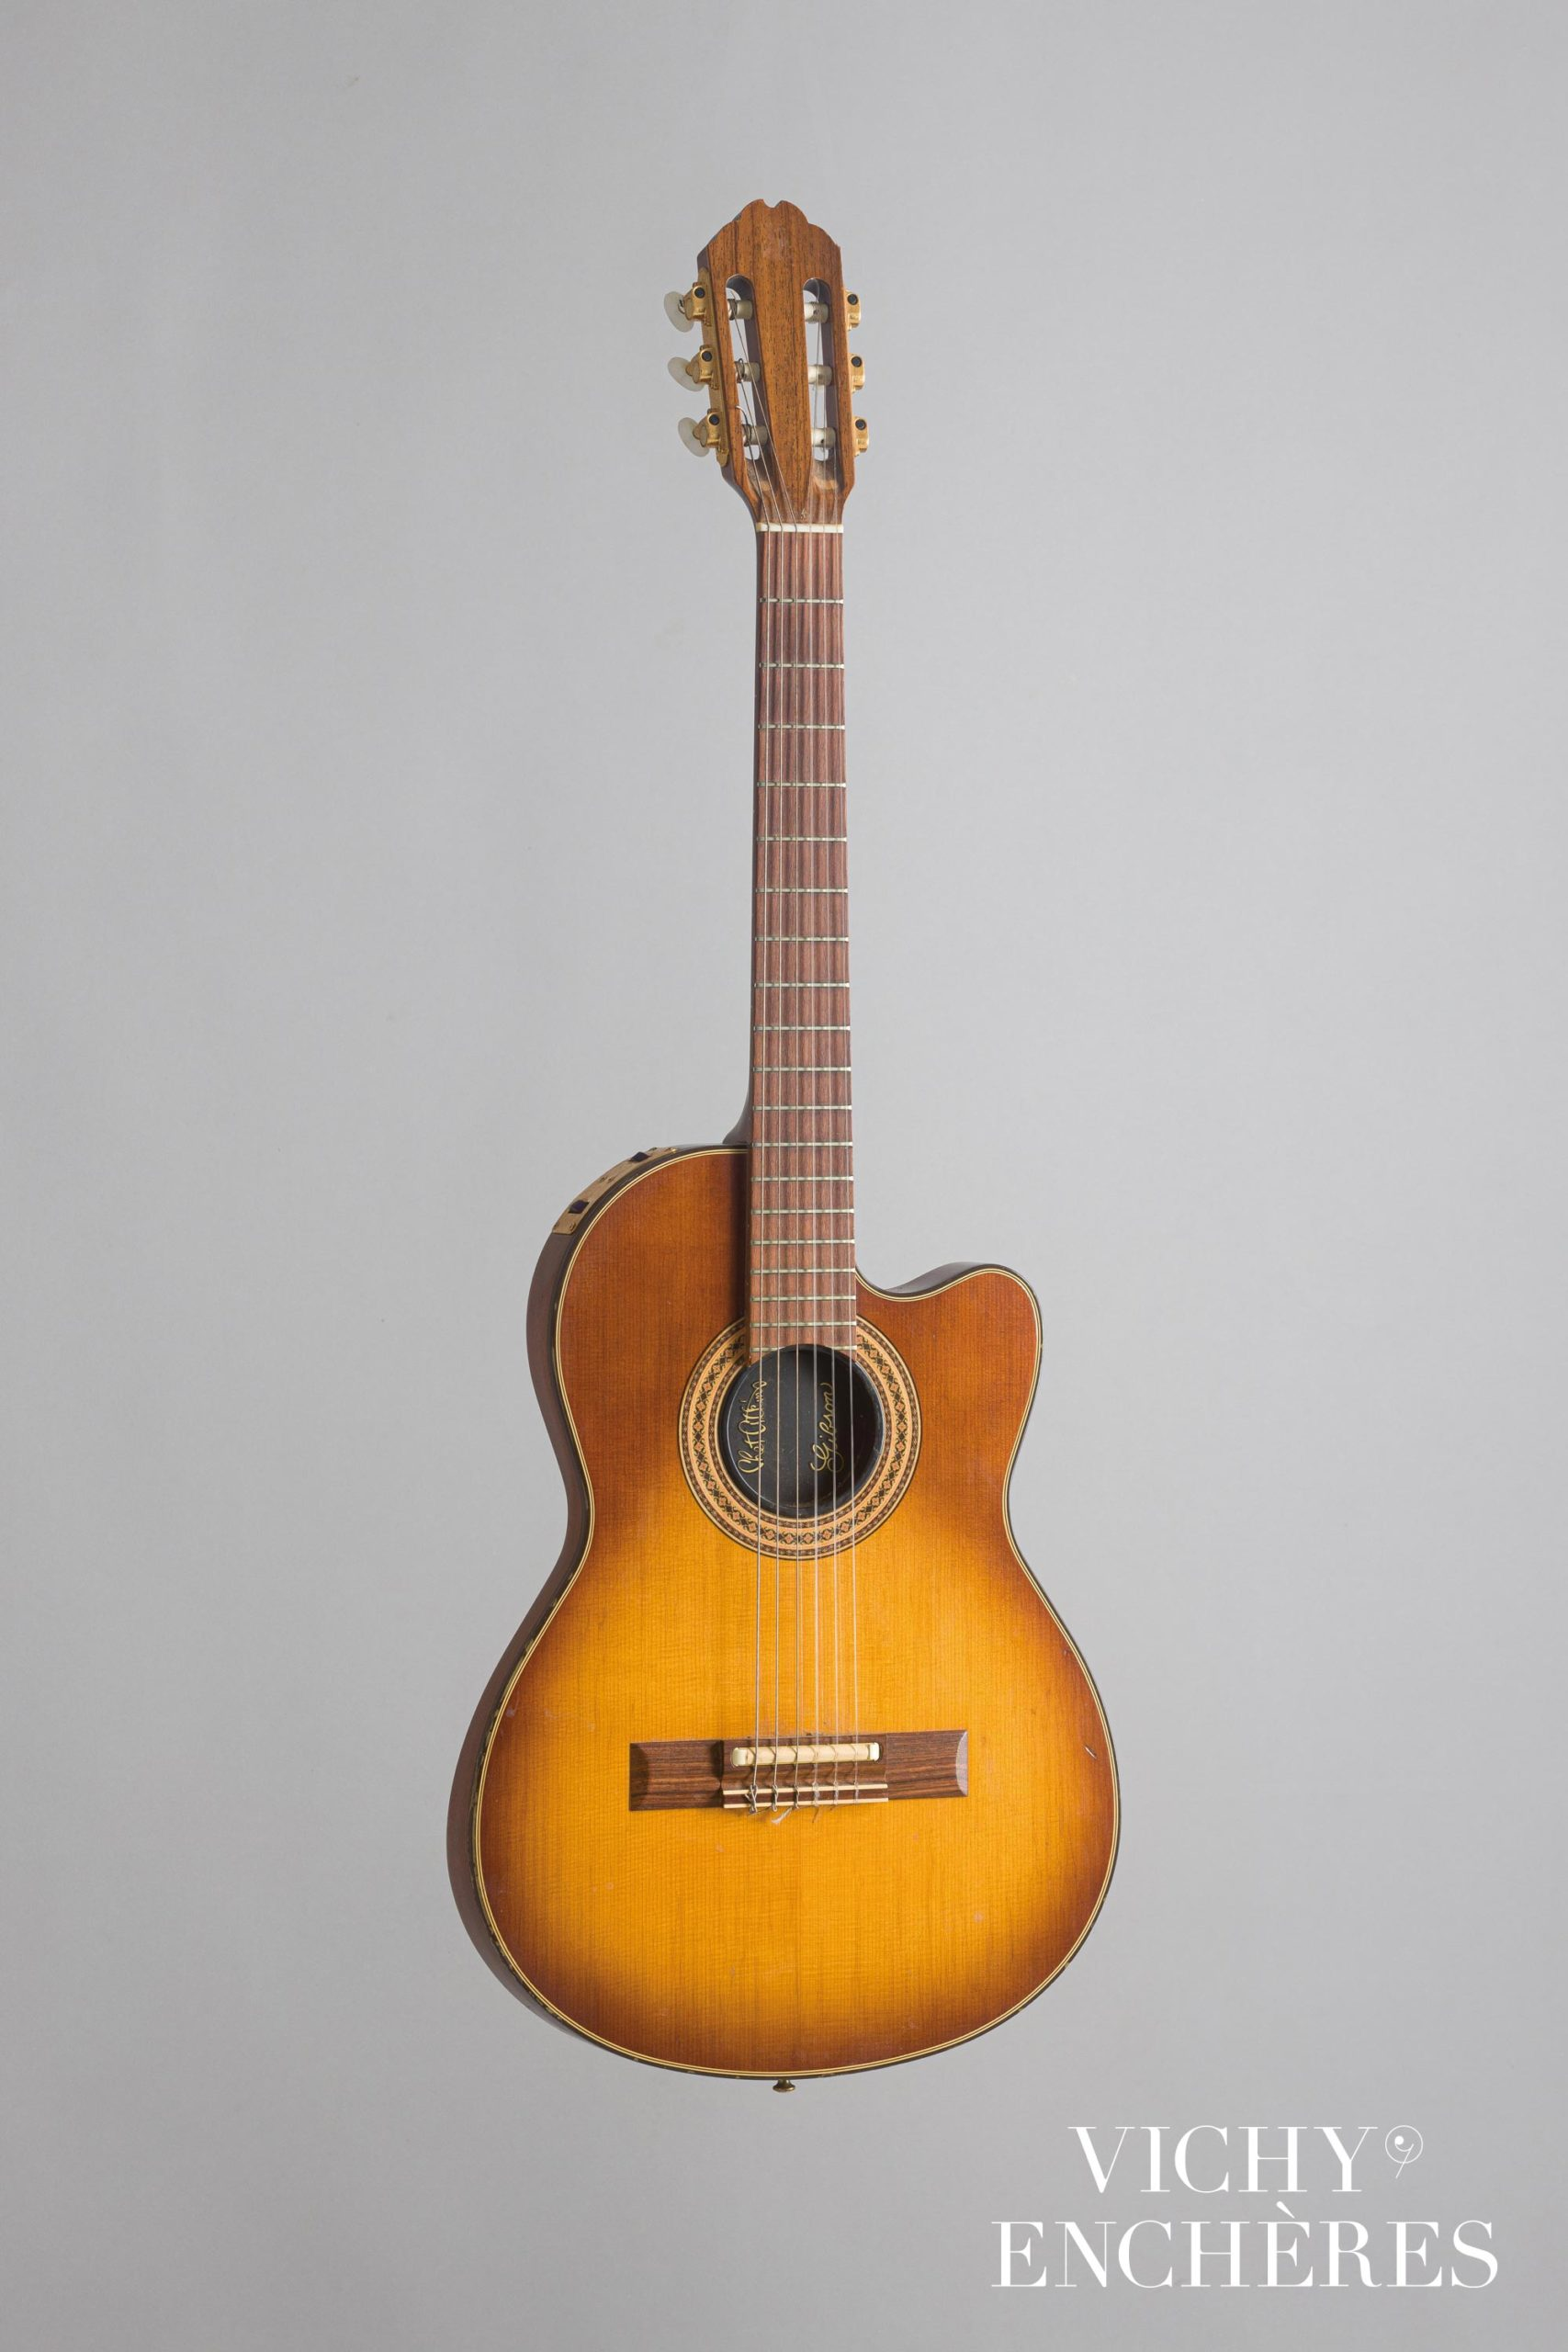 Guitare solidbody GIBSON modèle Chet Atkins